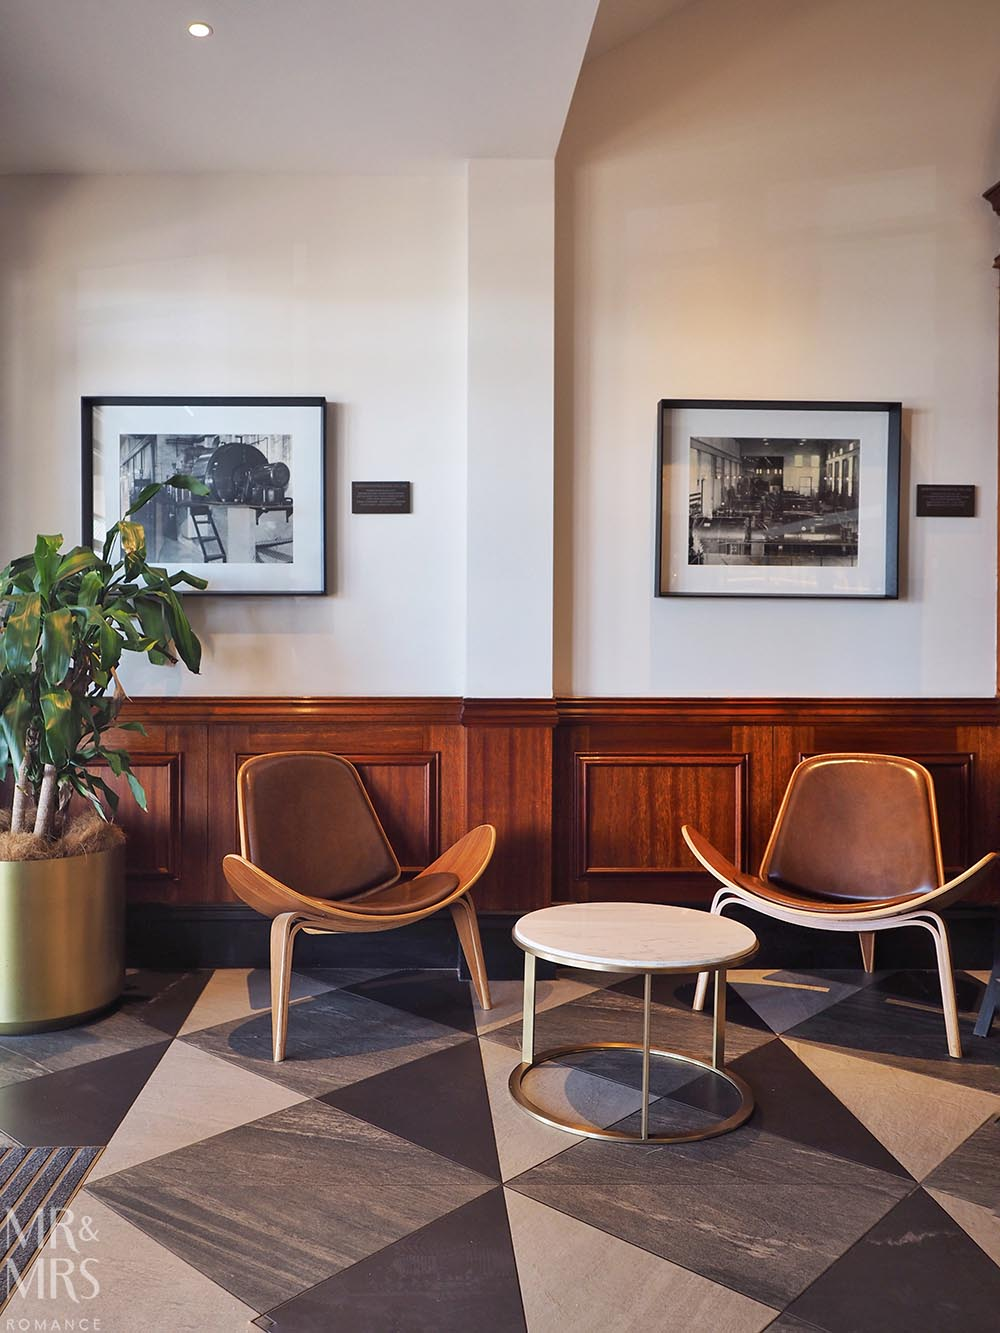 Where to stay in Tamworth NSW - Powerhouse Hotel Tamworth by Rydges - lobby chairs